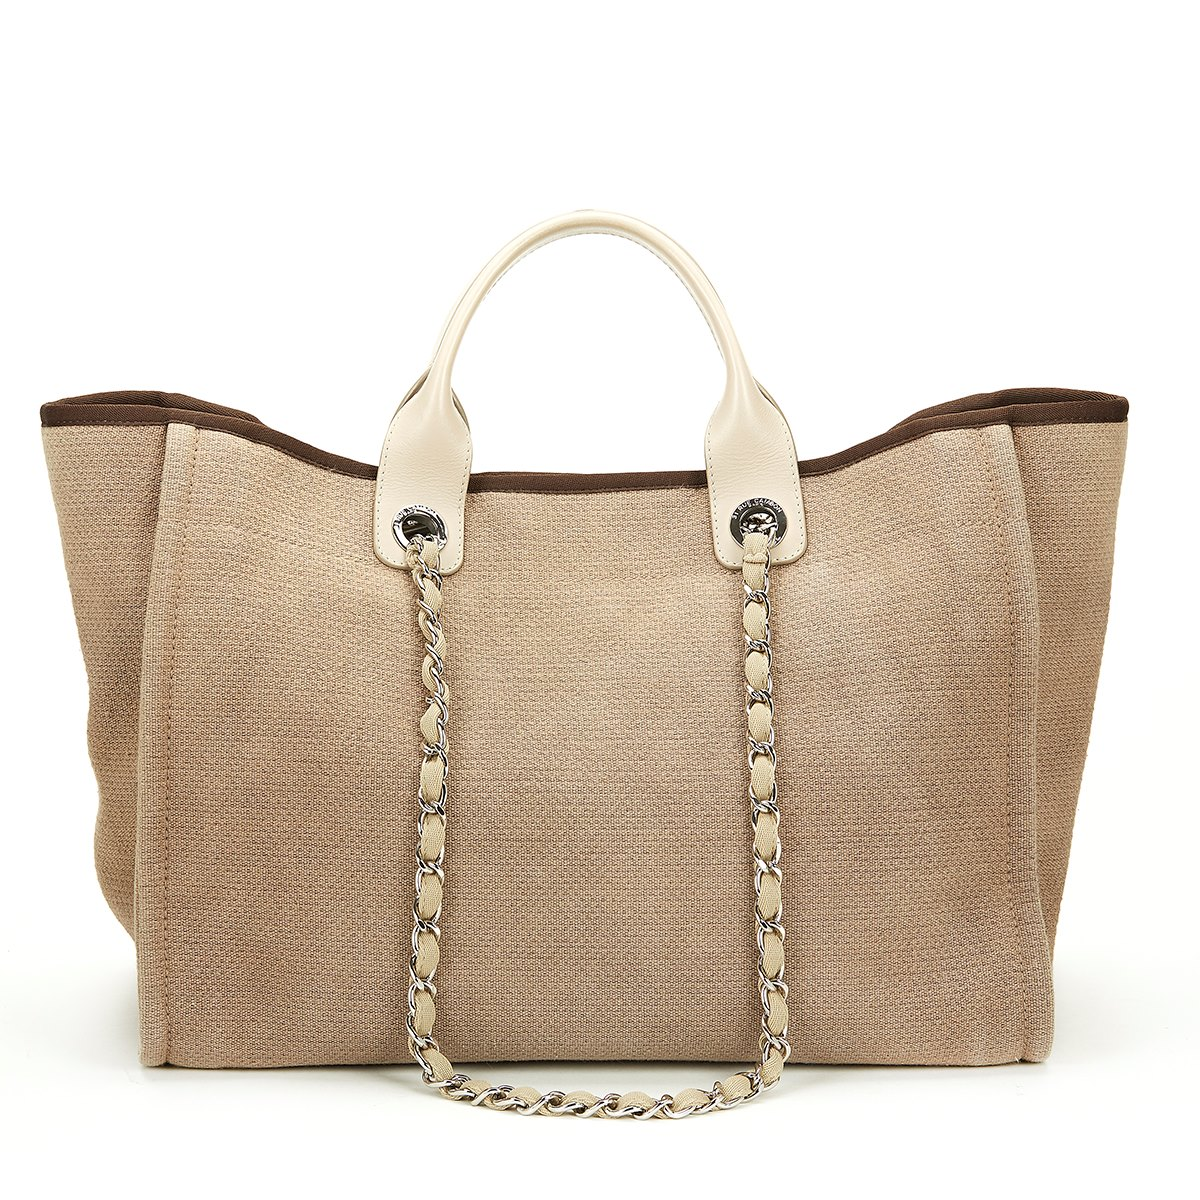 f3d3696b323f Chanel Deauville Tote Price | Stanford Center for Opportunity Policy ...